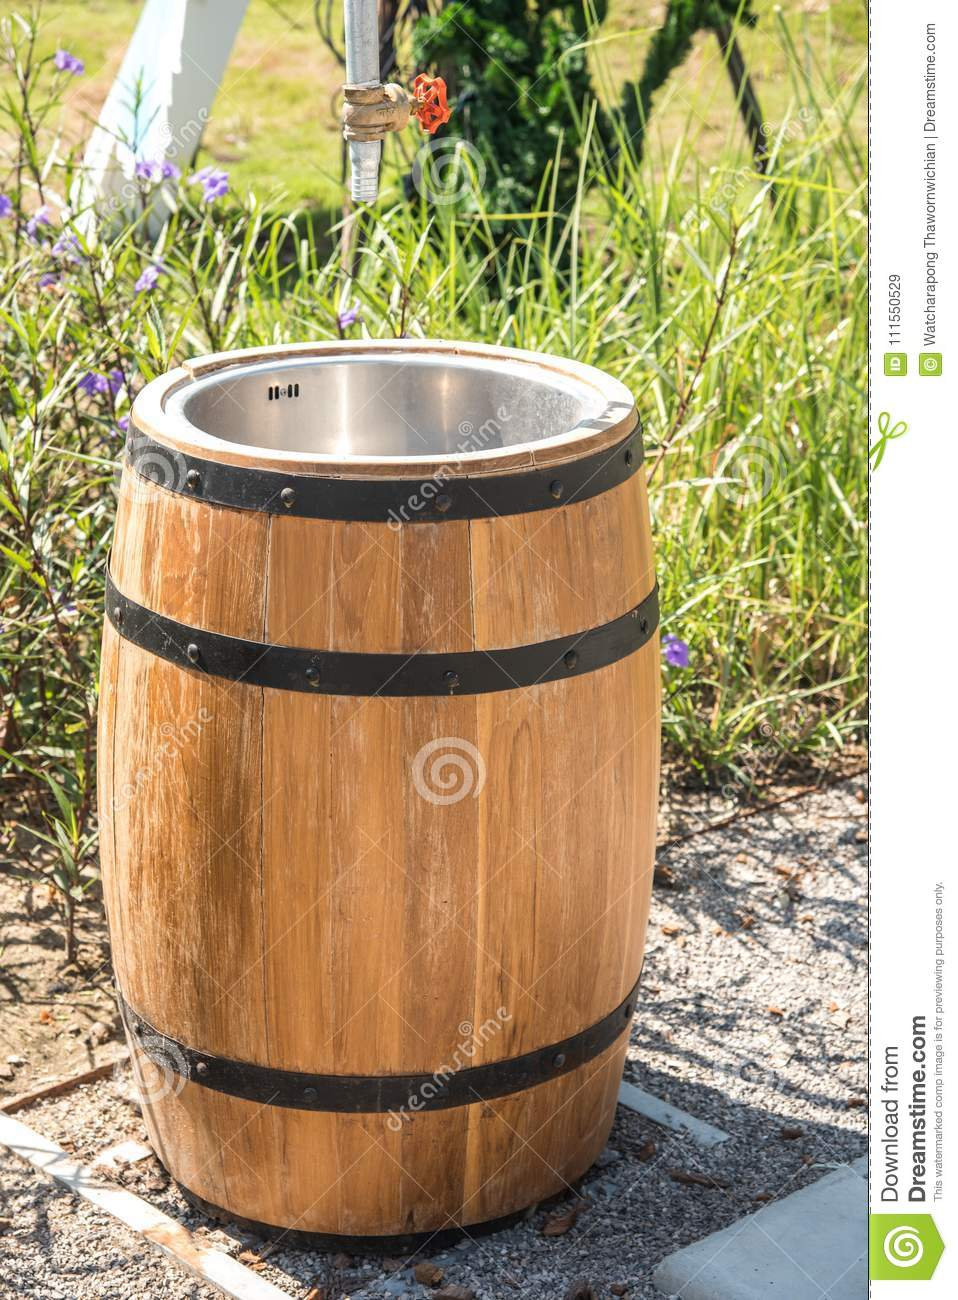 Wash Tub Made Of Wooden Barrel Stock Image Image Of Faucet Rinse